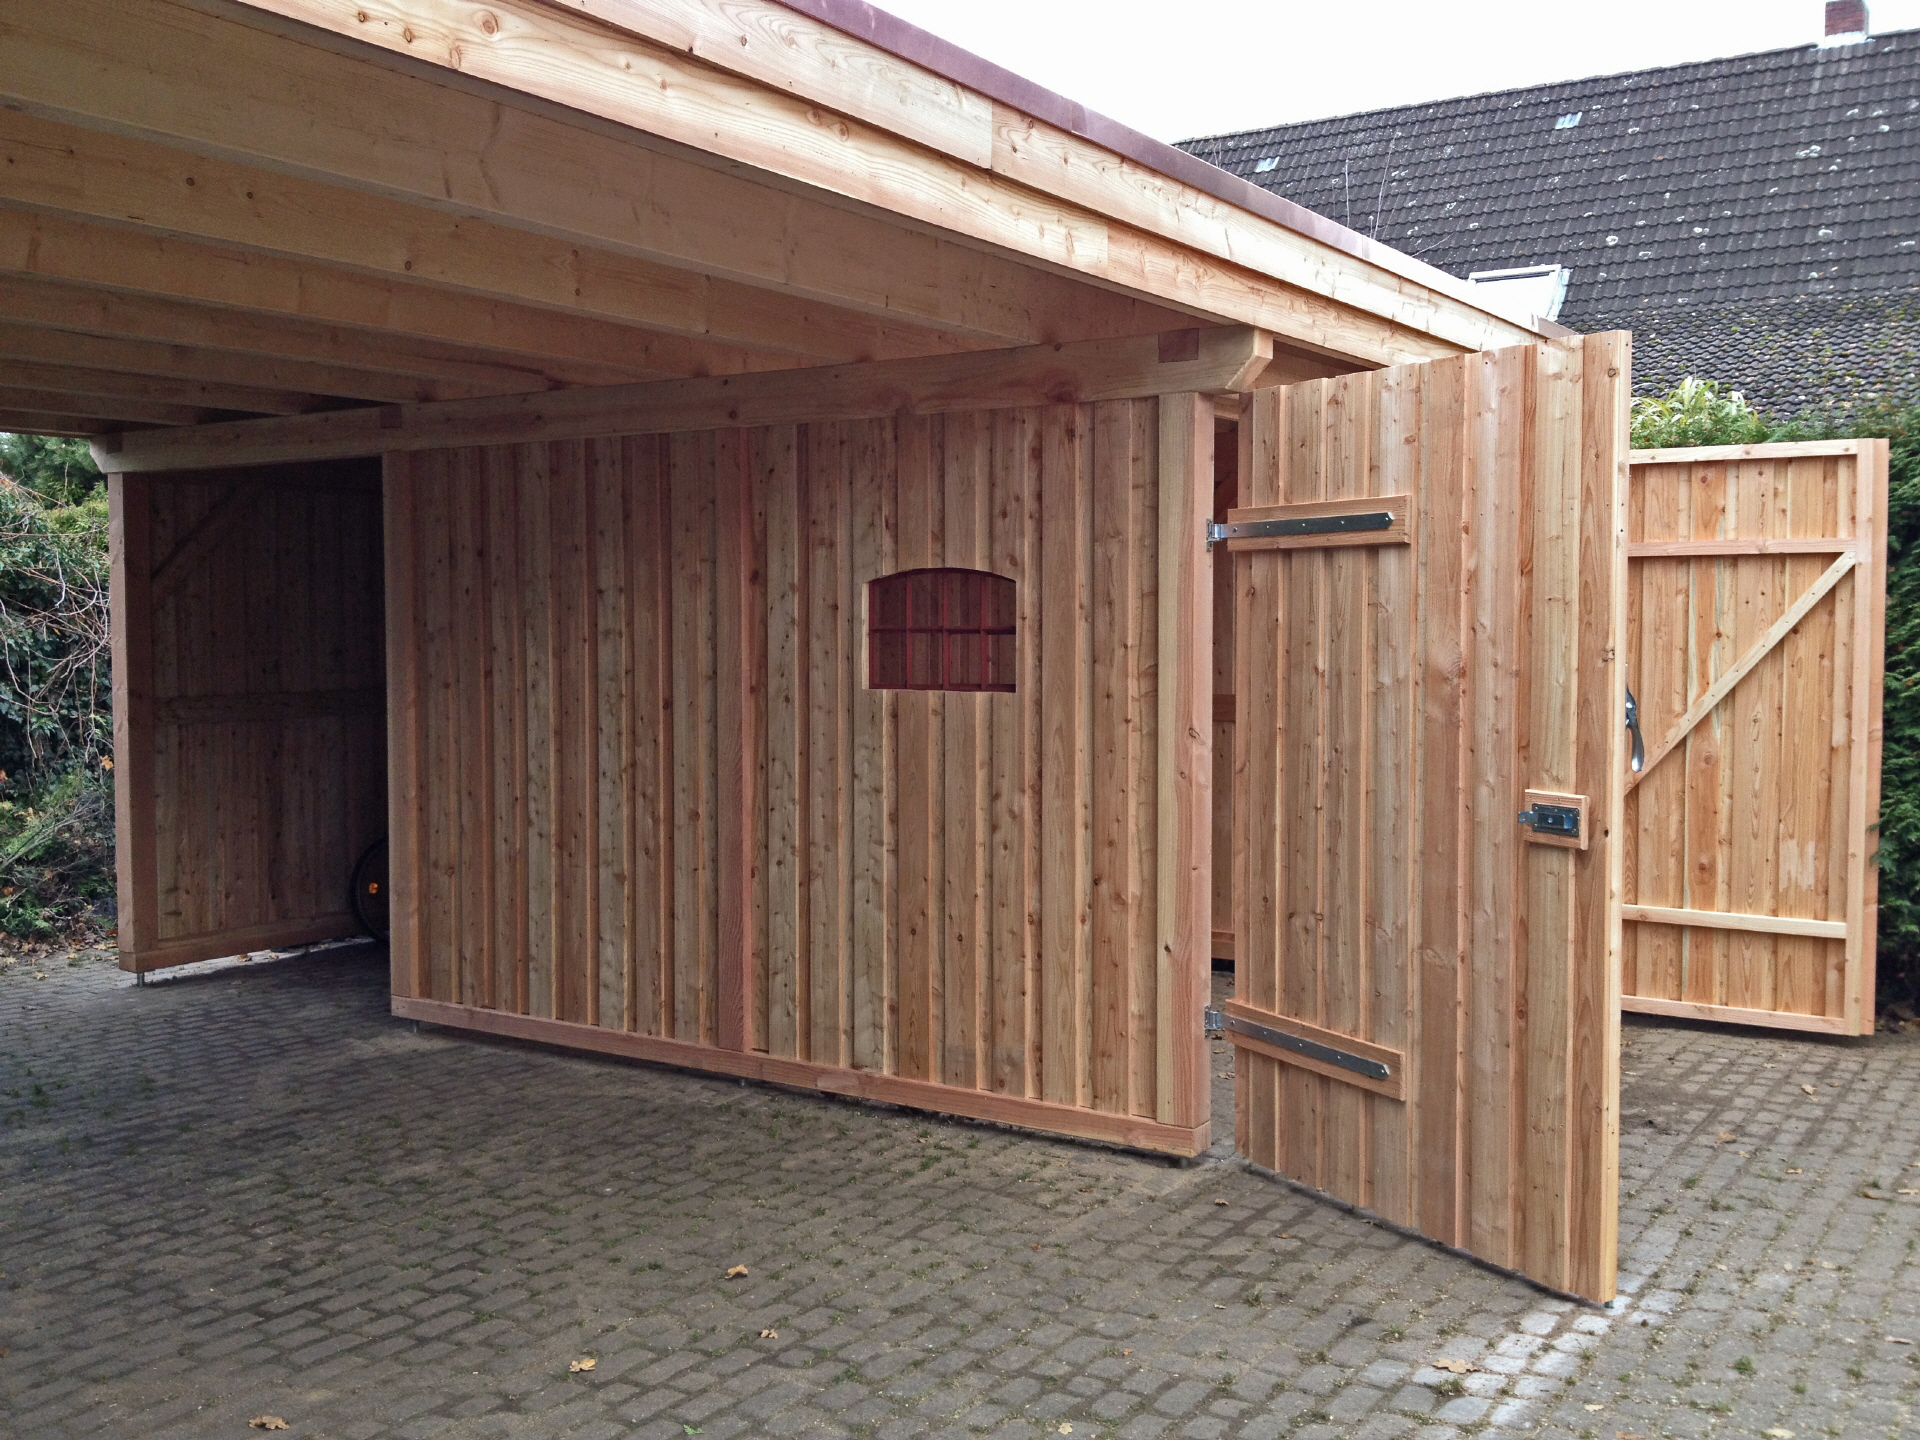 garage mit carport aus holz. Black Bedroom Furniture Sets. Home Design Ideas